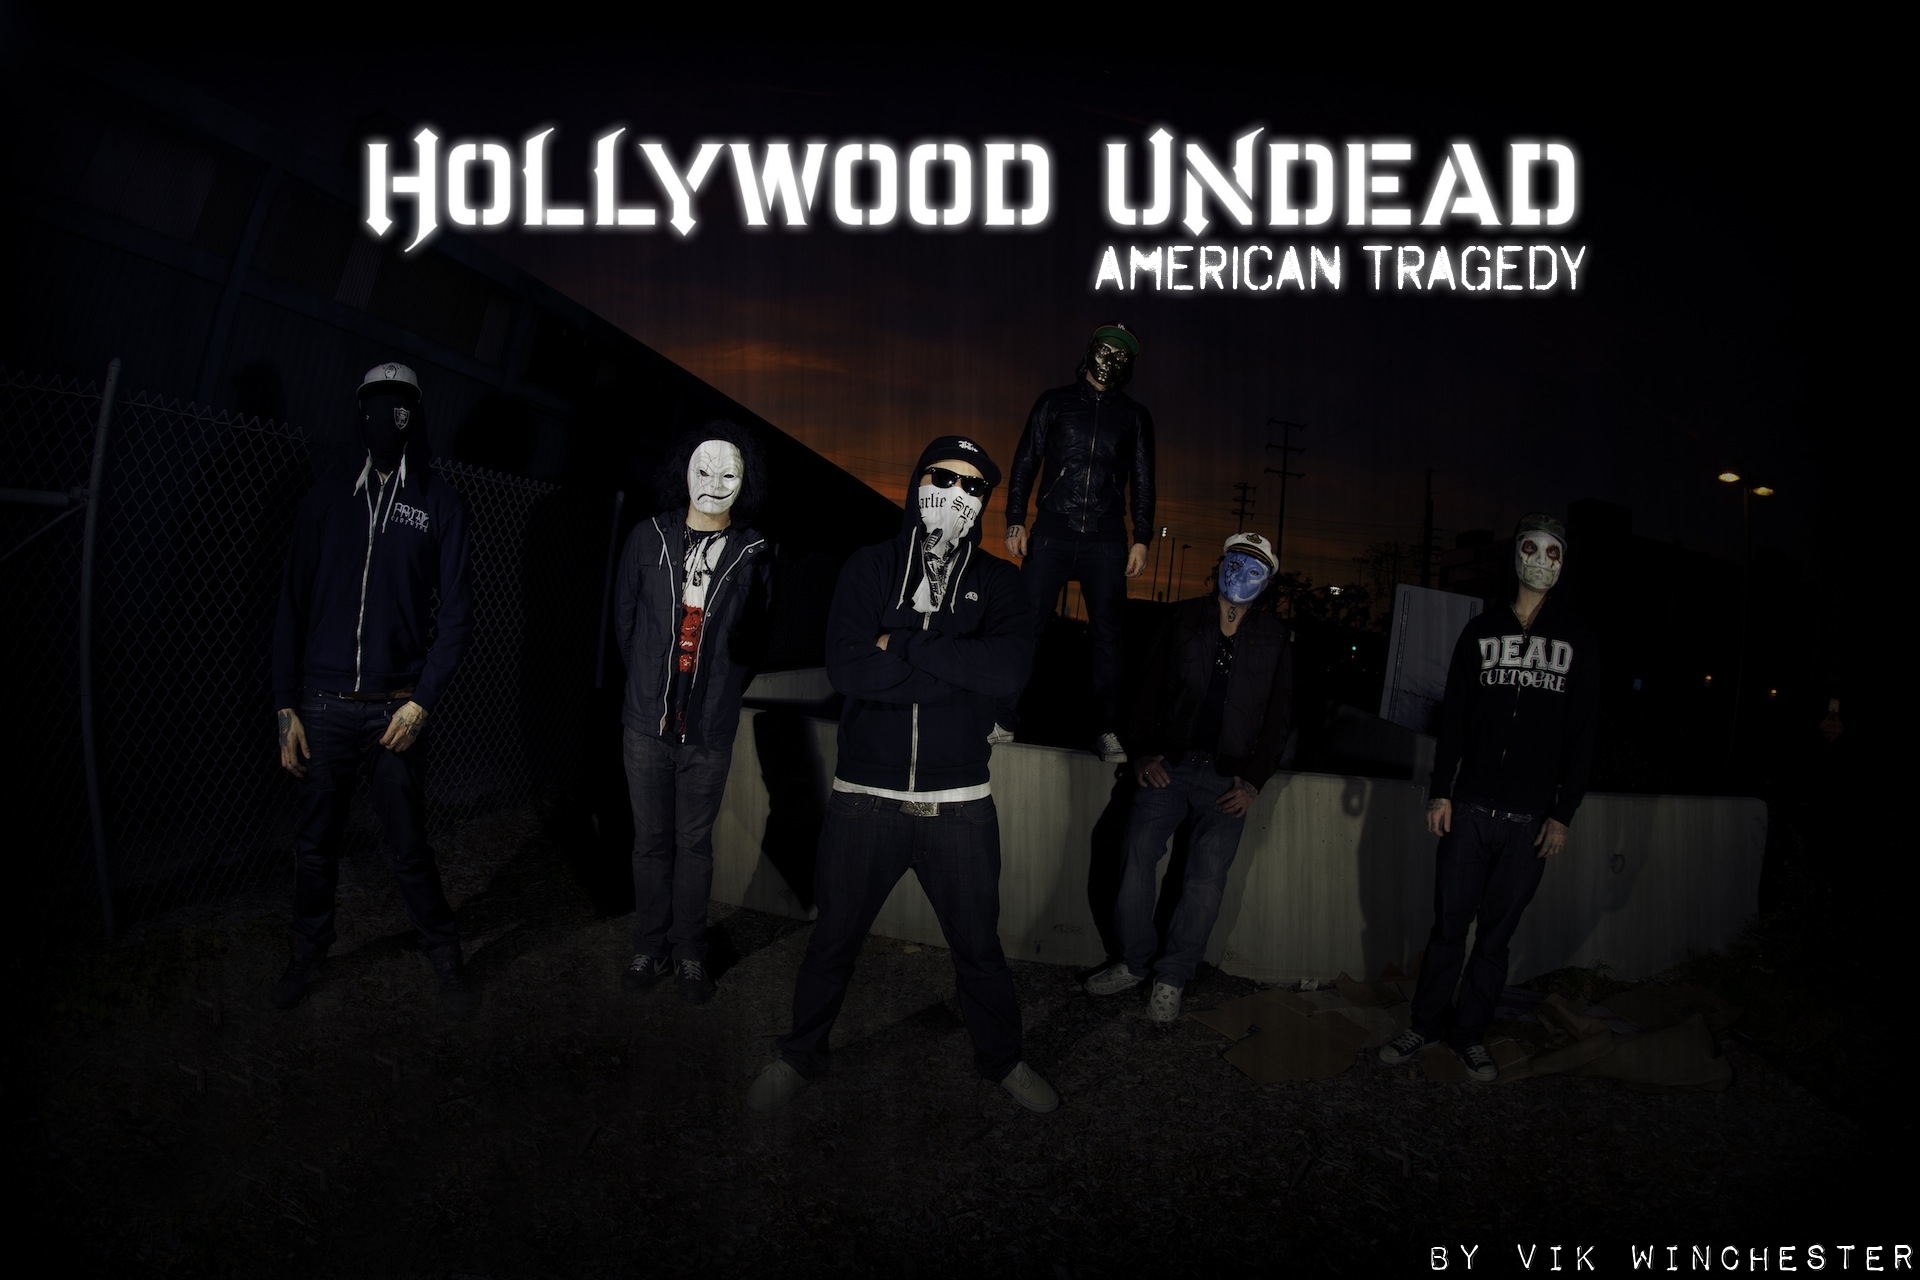 Hollywood Undead Tour 2015 pentilcuwiltop 1920x1280